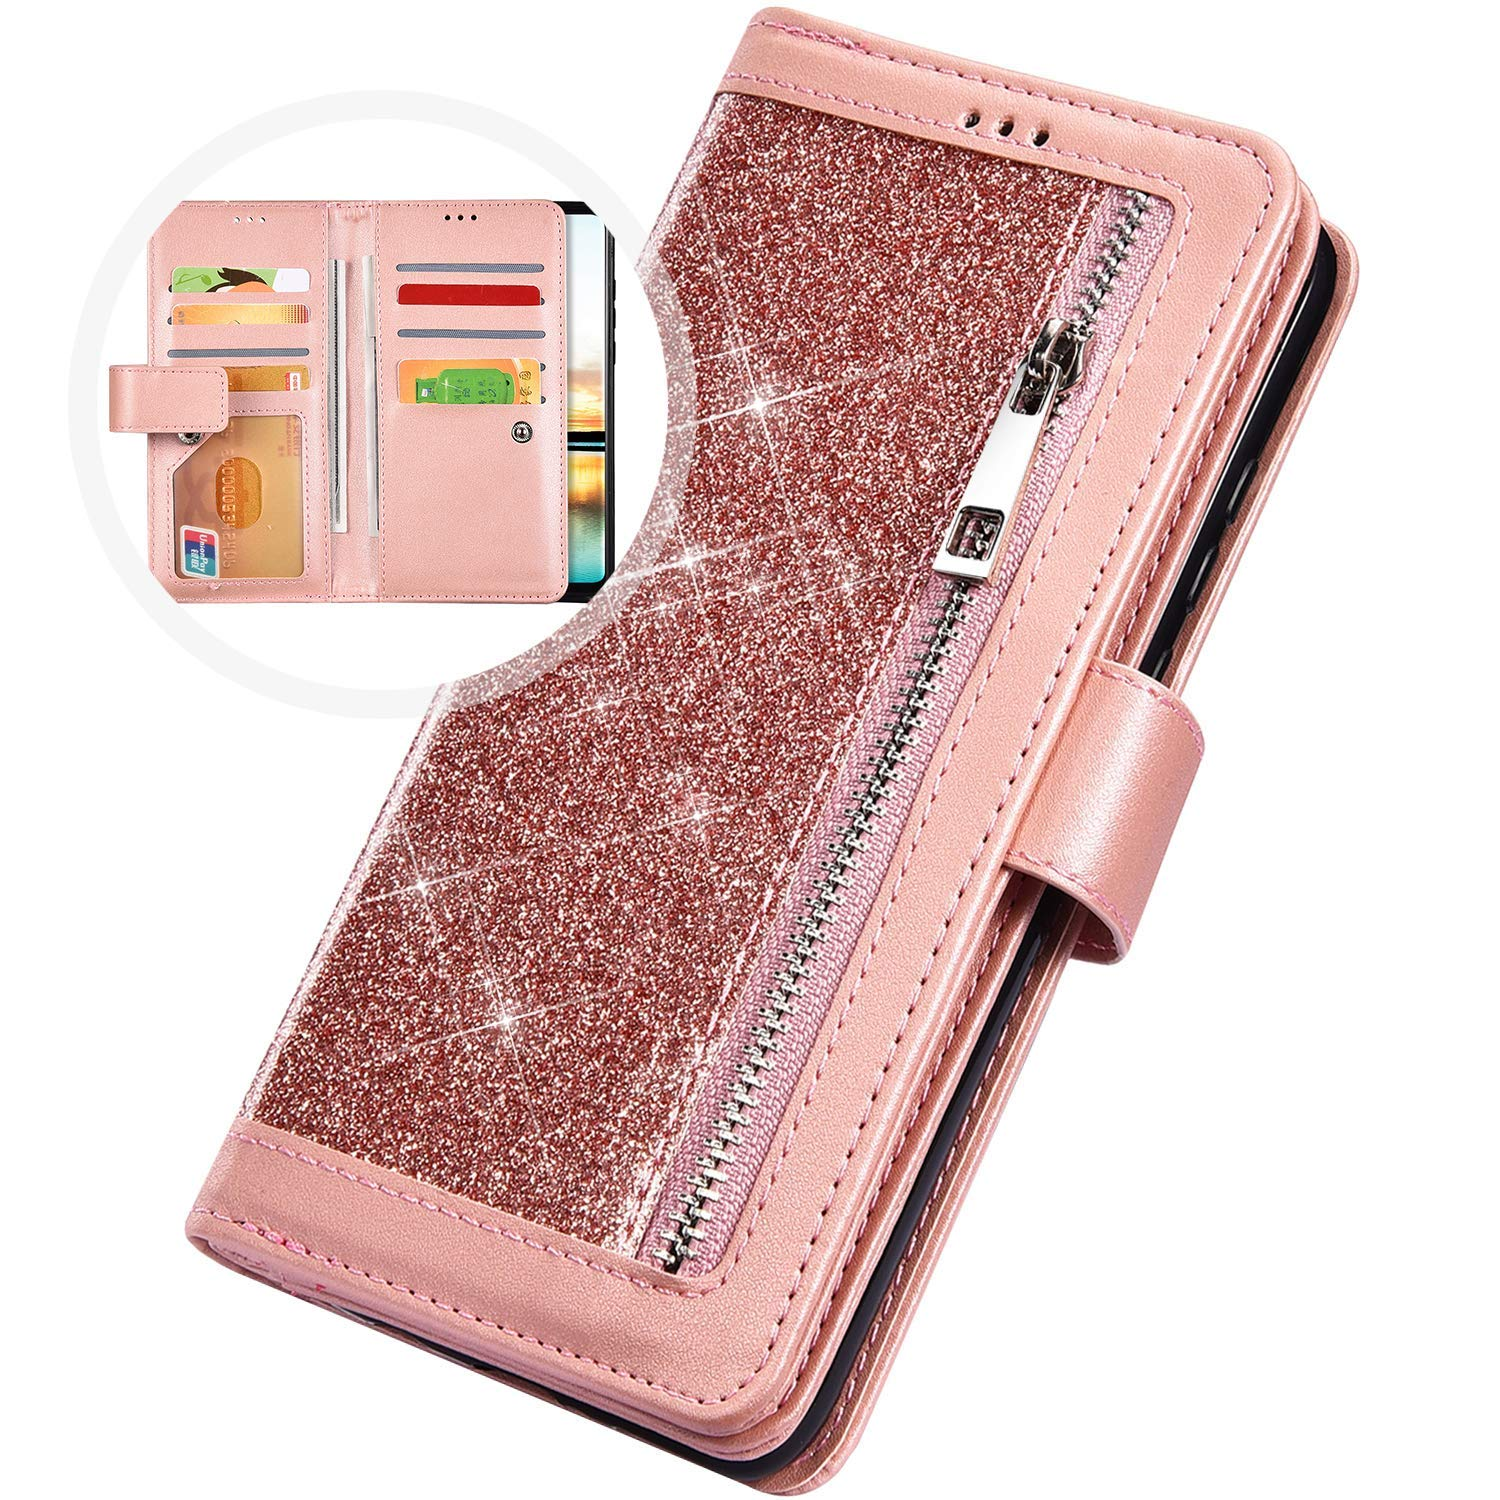 PHEZEN Case for Samsung Galaxy A50 Wallet Case,Sparkle Bling Glitter PU Leather Magnetic Flip Folio Protective Case Multi-Function 9 Credit Card Holders with Zipper Coins Purse Cover,Rose Gold by PHEZEN